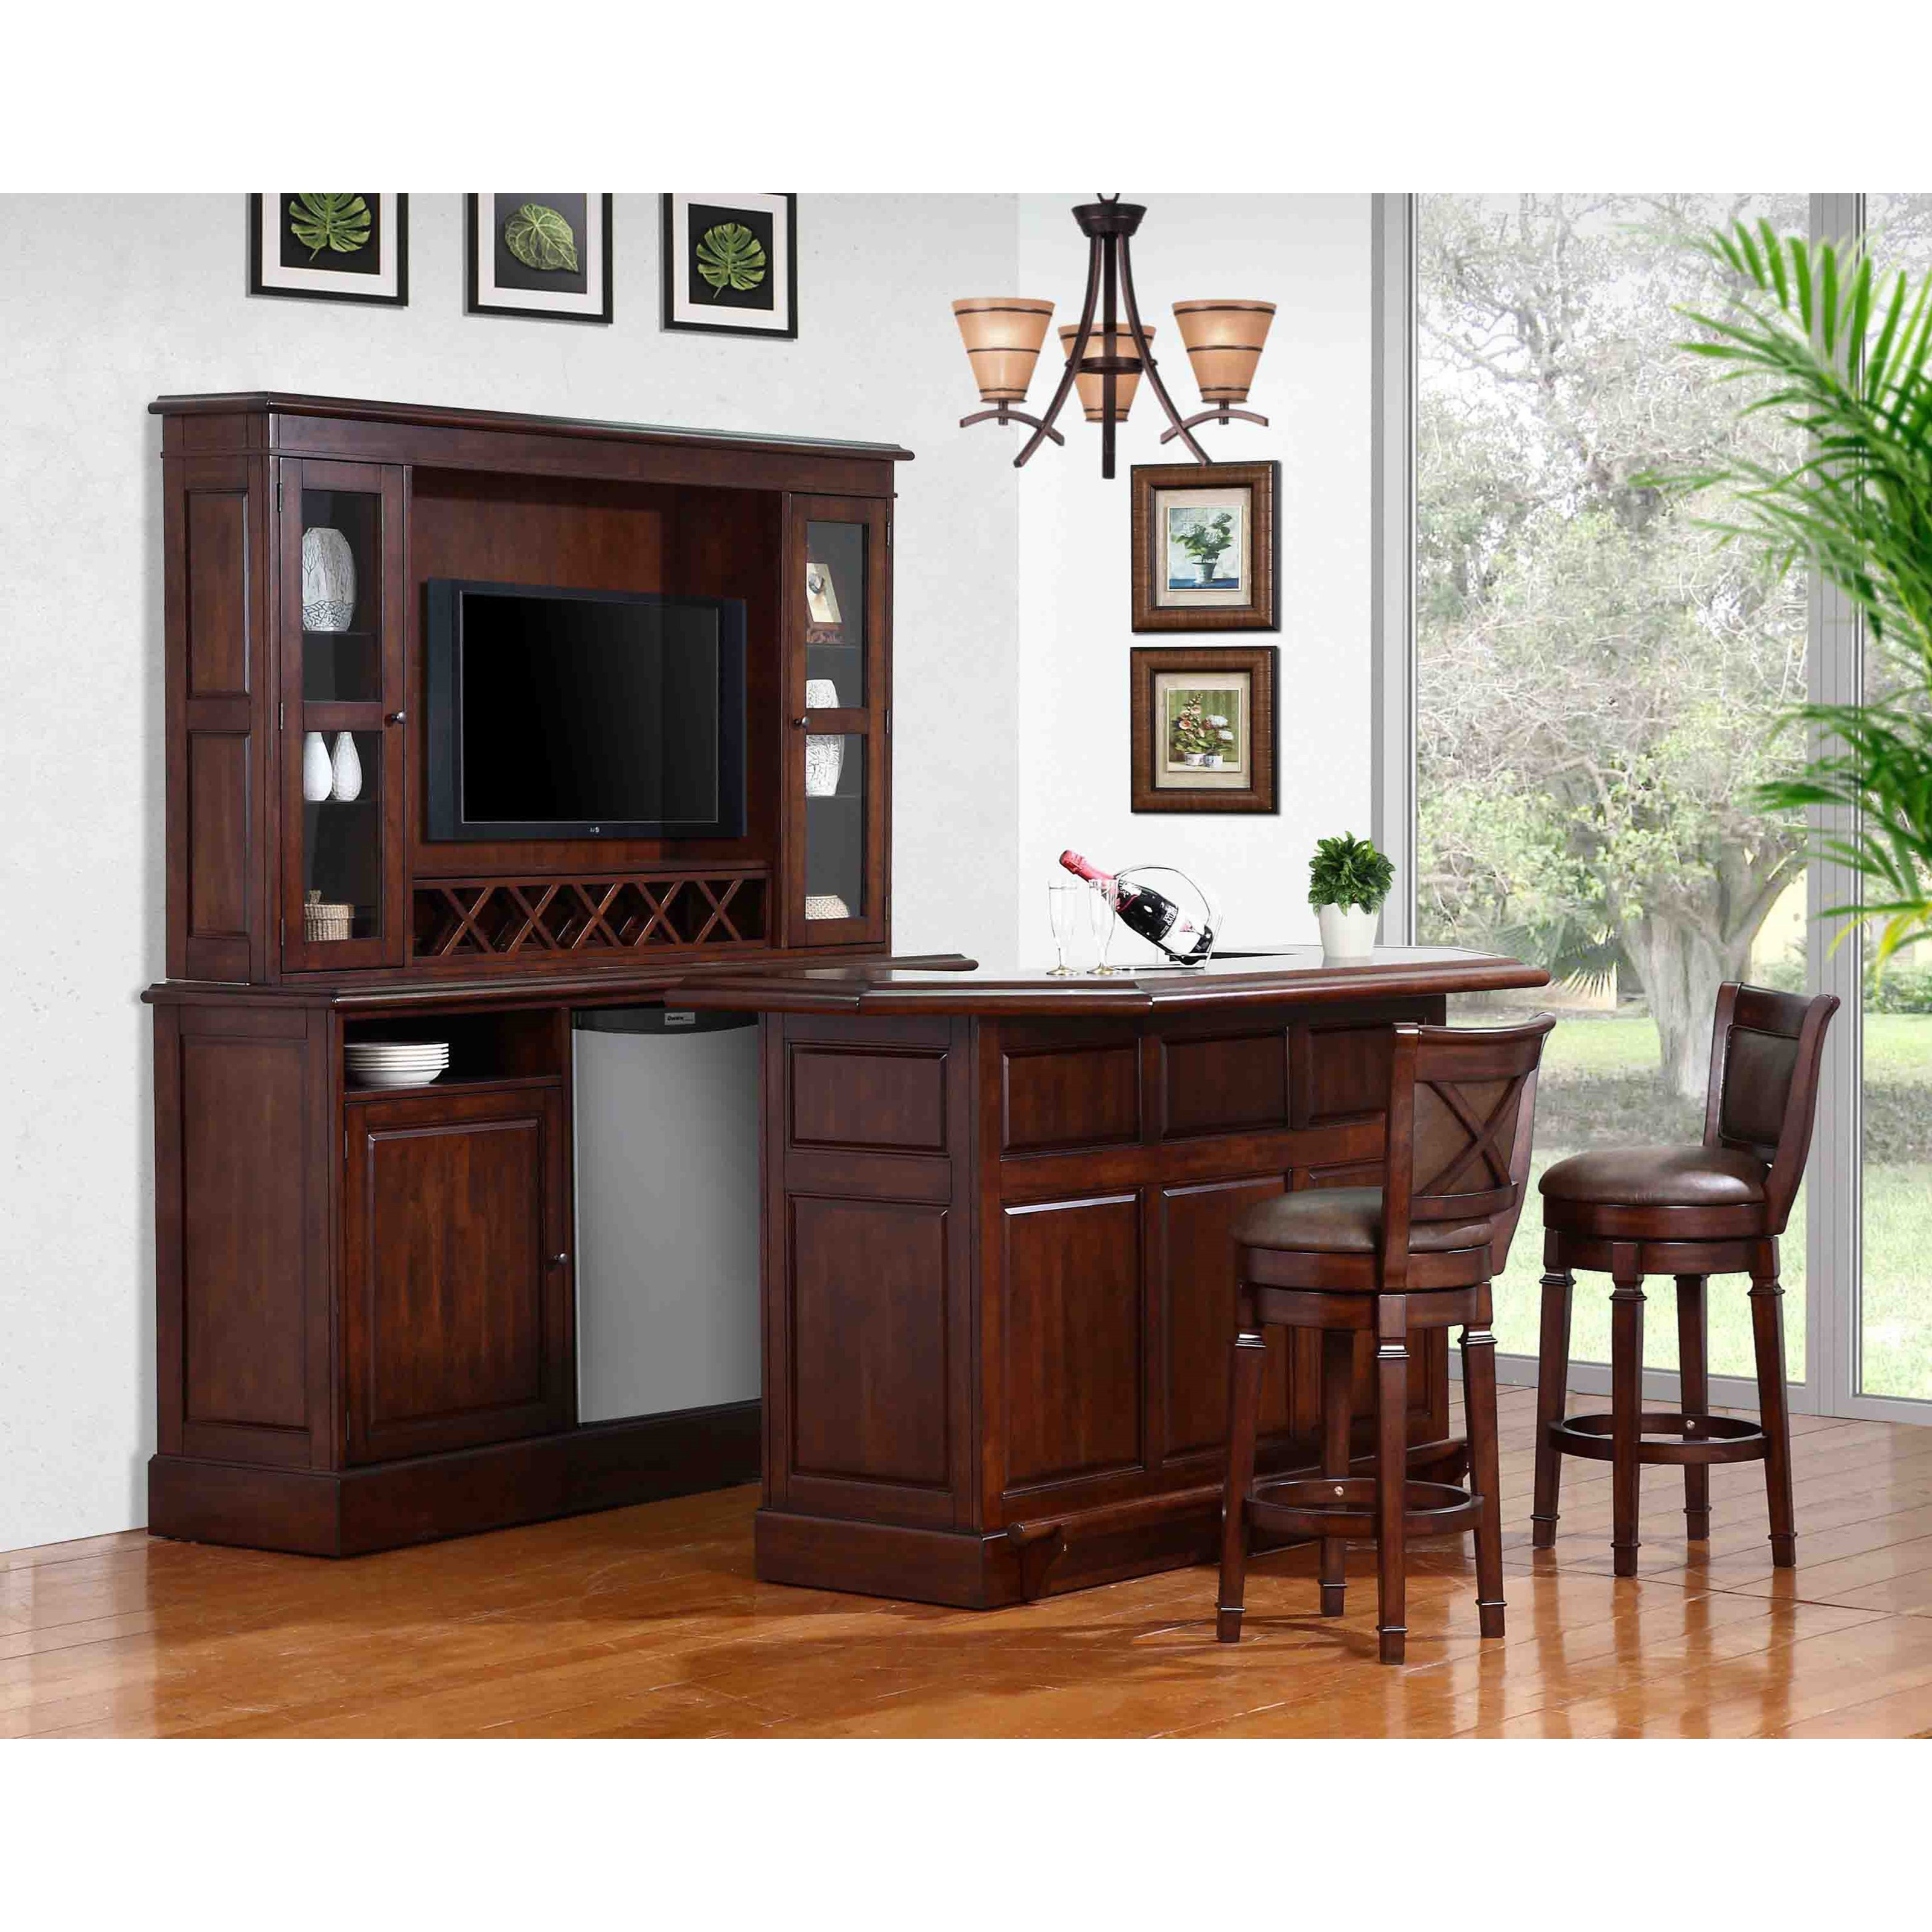 plete Bar and Stool Set with Wine Rack and Fridge Opening by